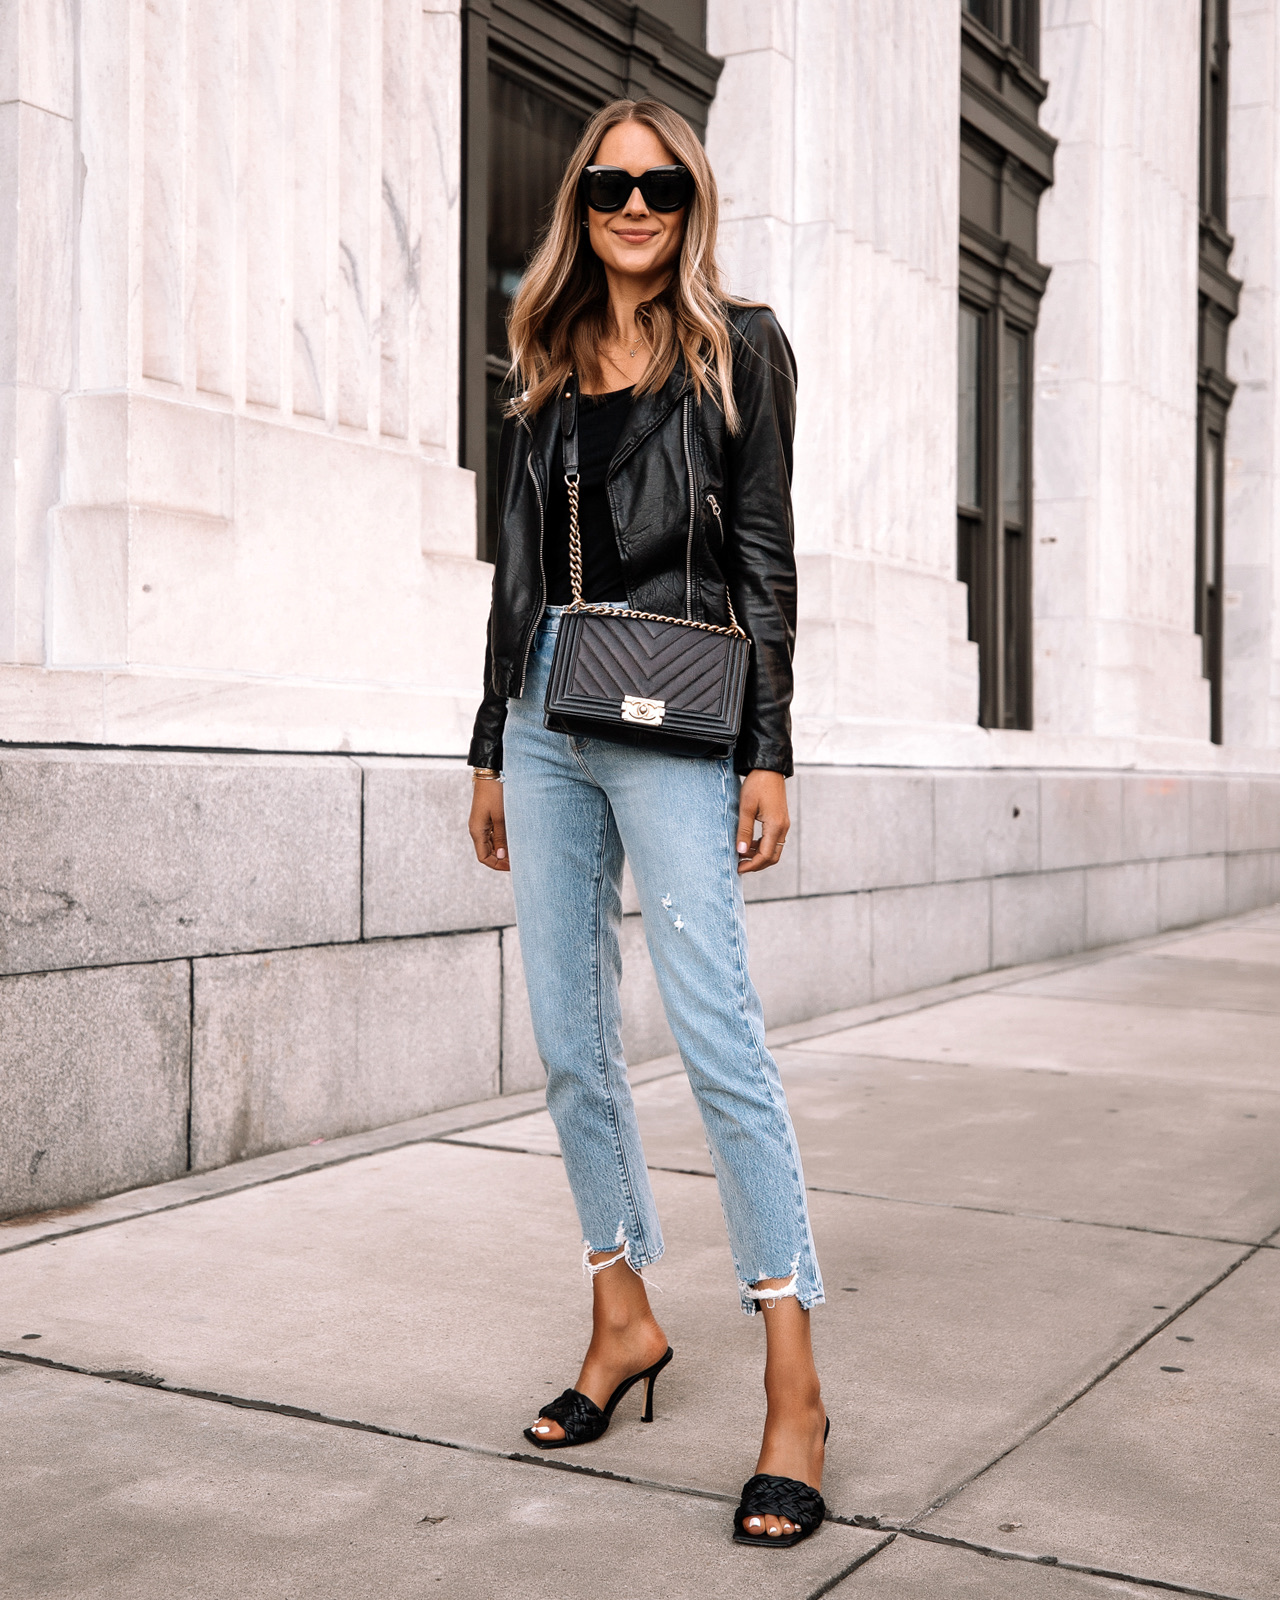 Fashion Jackson Wearing Madewell Black Leather Jacket Black Bodysuit Ripped Jeans Black Woven Heeled Sandals Chanel Black Boy Bag Street Style Outfit